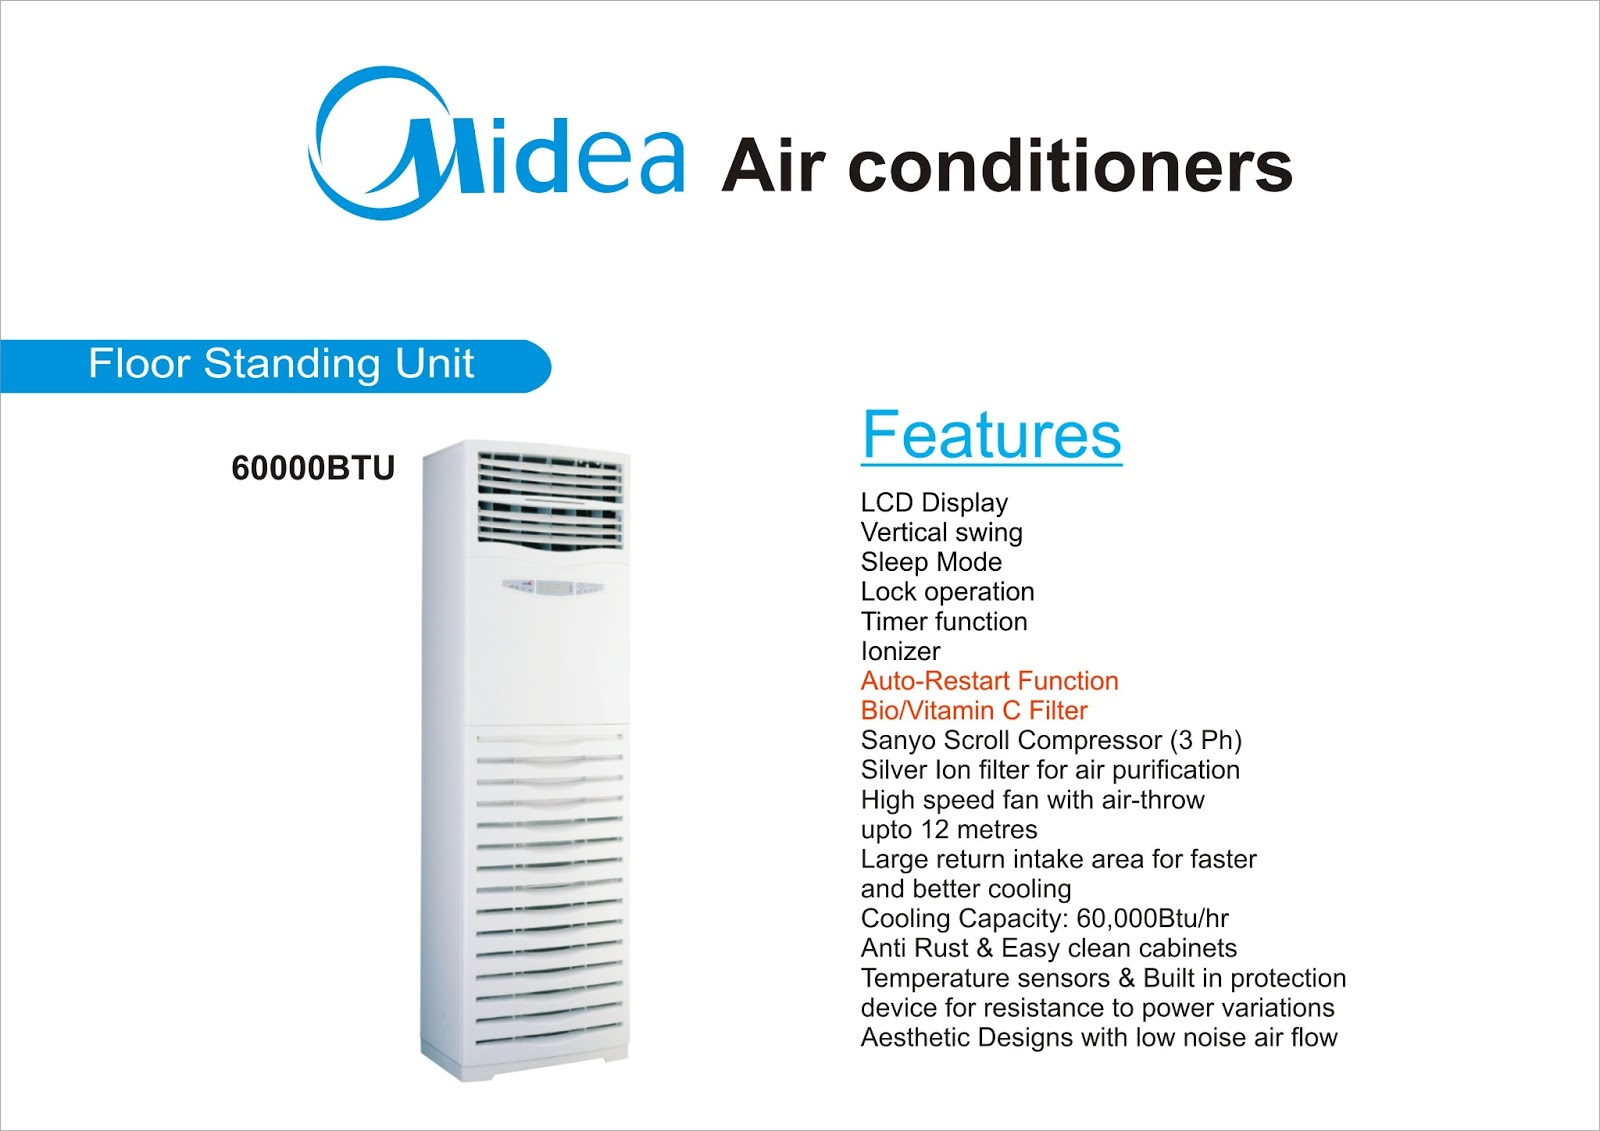 #0783C4 BEST  : MIDEA PRODUCTS Best 2933 Floor Standing Ac Unit photos with 1600x1131 px on helpvideos.info - Air Conditioners, Air Coolers and more